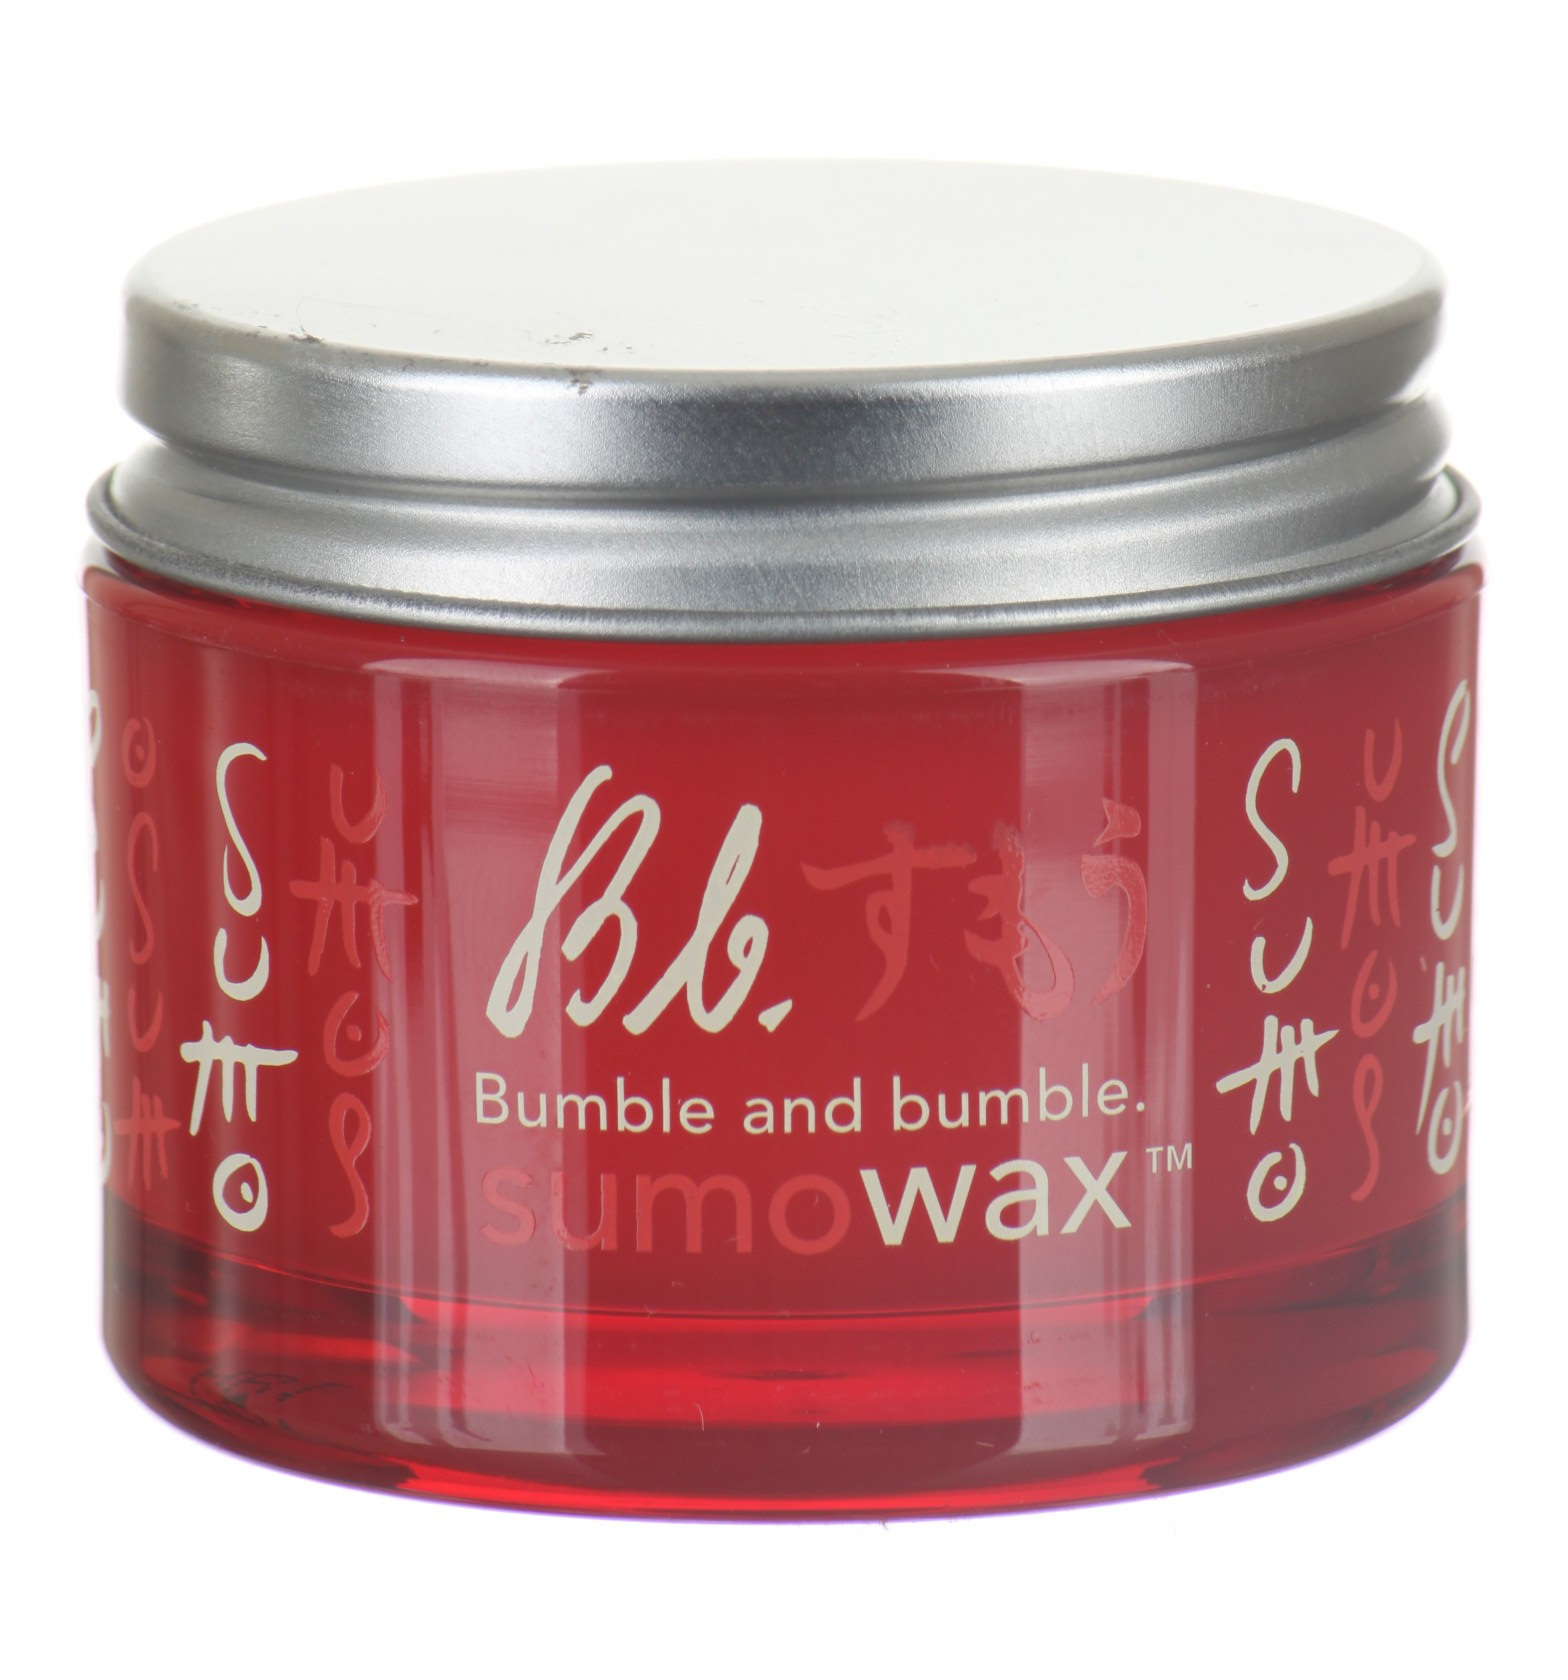 Bumble and Bumble Sumo wax